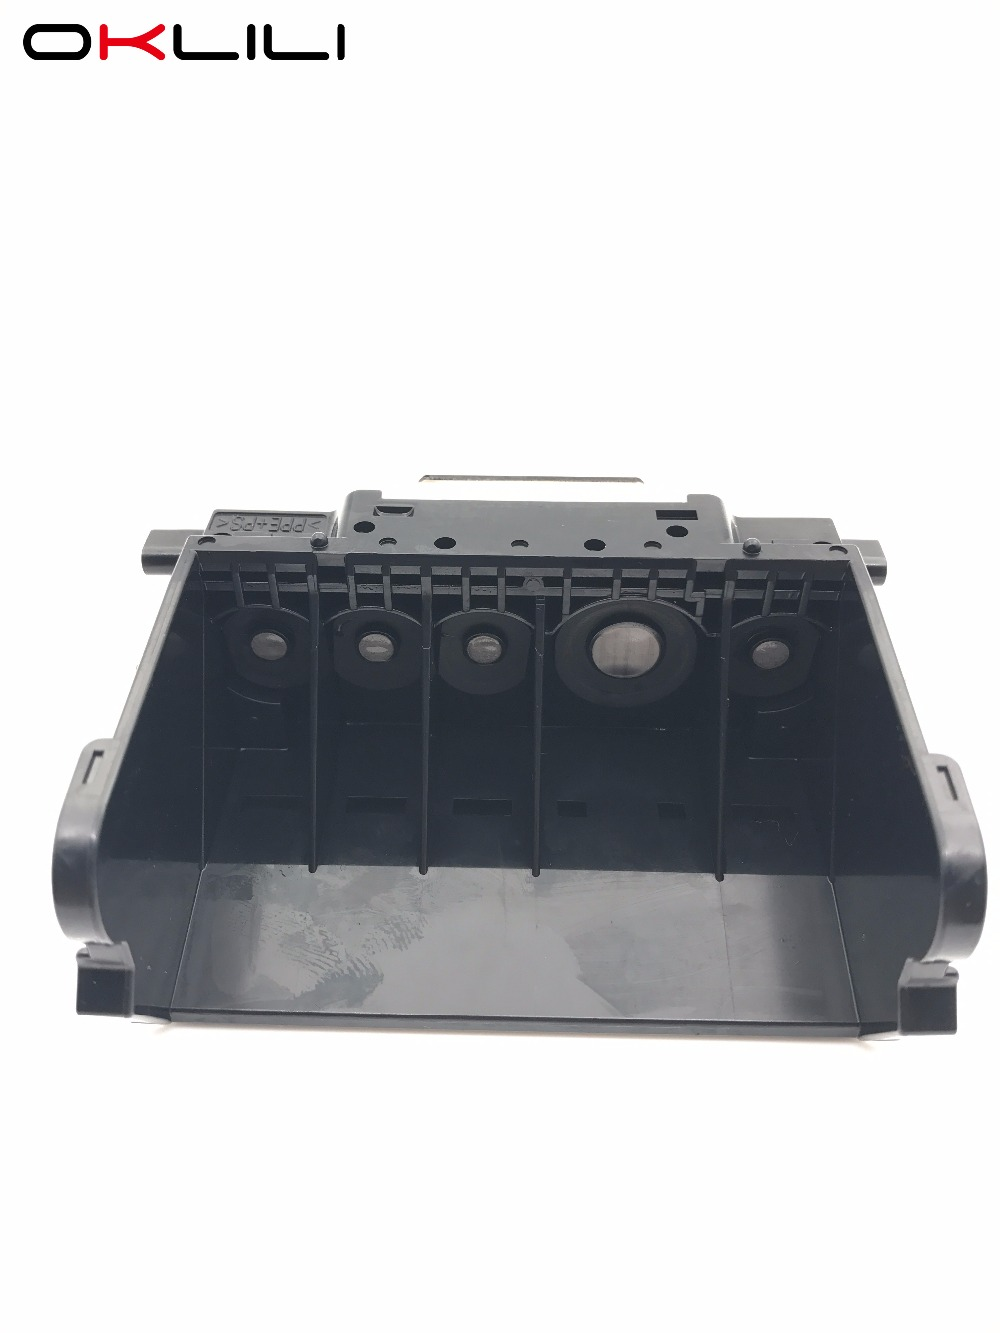 OKLILI ORIGINAL QY6-0075 QY6-0075-000 Printhead Print Head Printer Head for Canon iP5300 MP810 iP4500 MP610 MX850 genuine brand new qy6 0070 printhead print head for canon mp510 mp520 mx700 ip3300 ip3500 printer